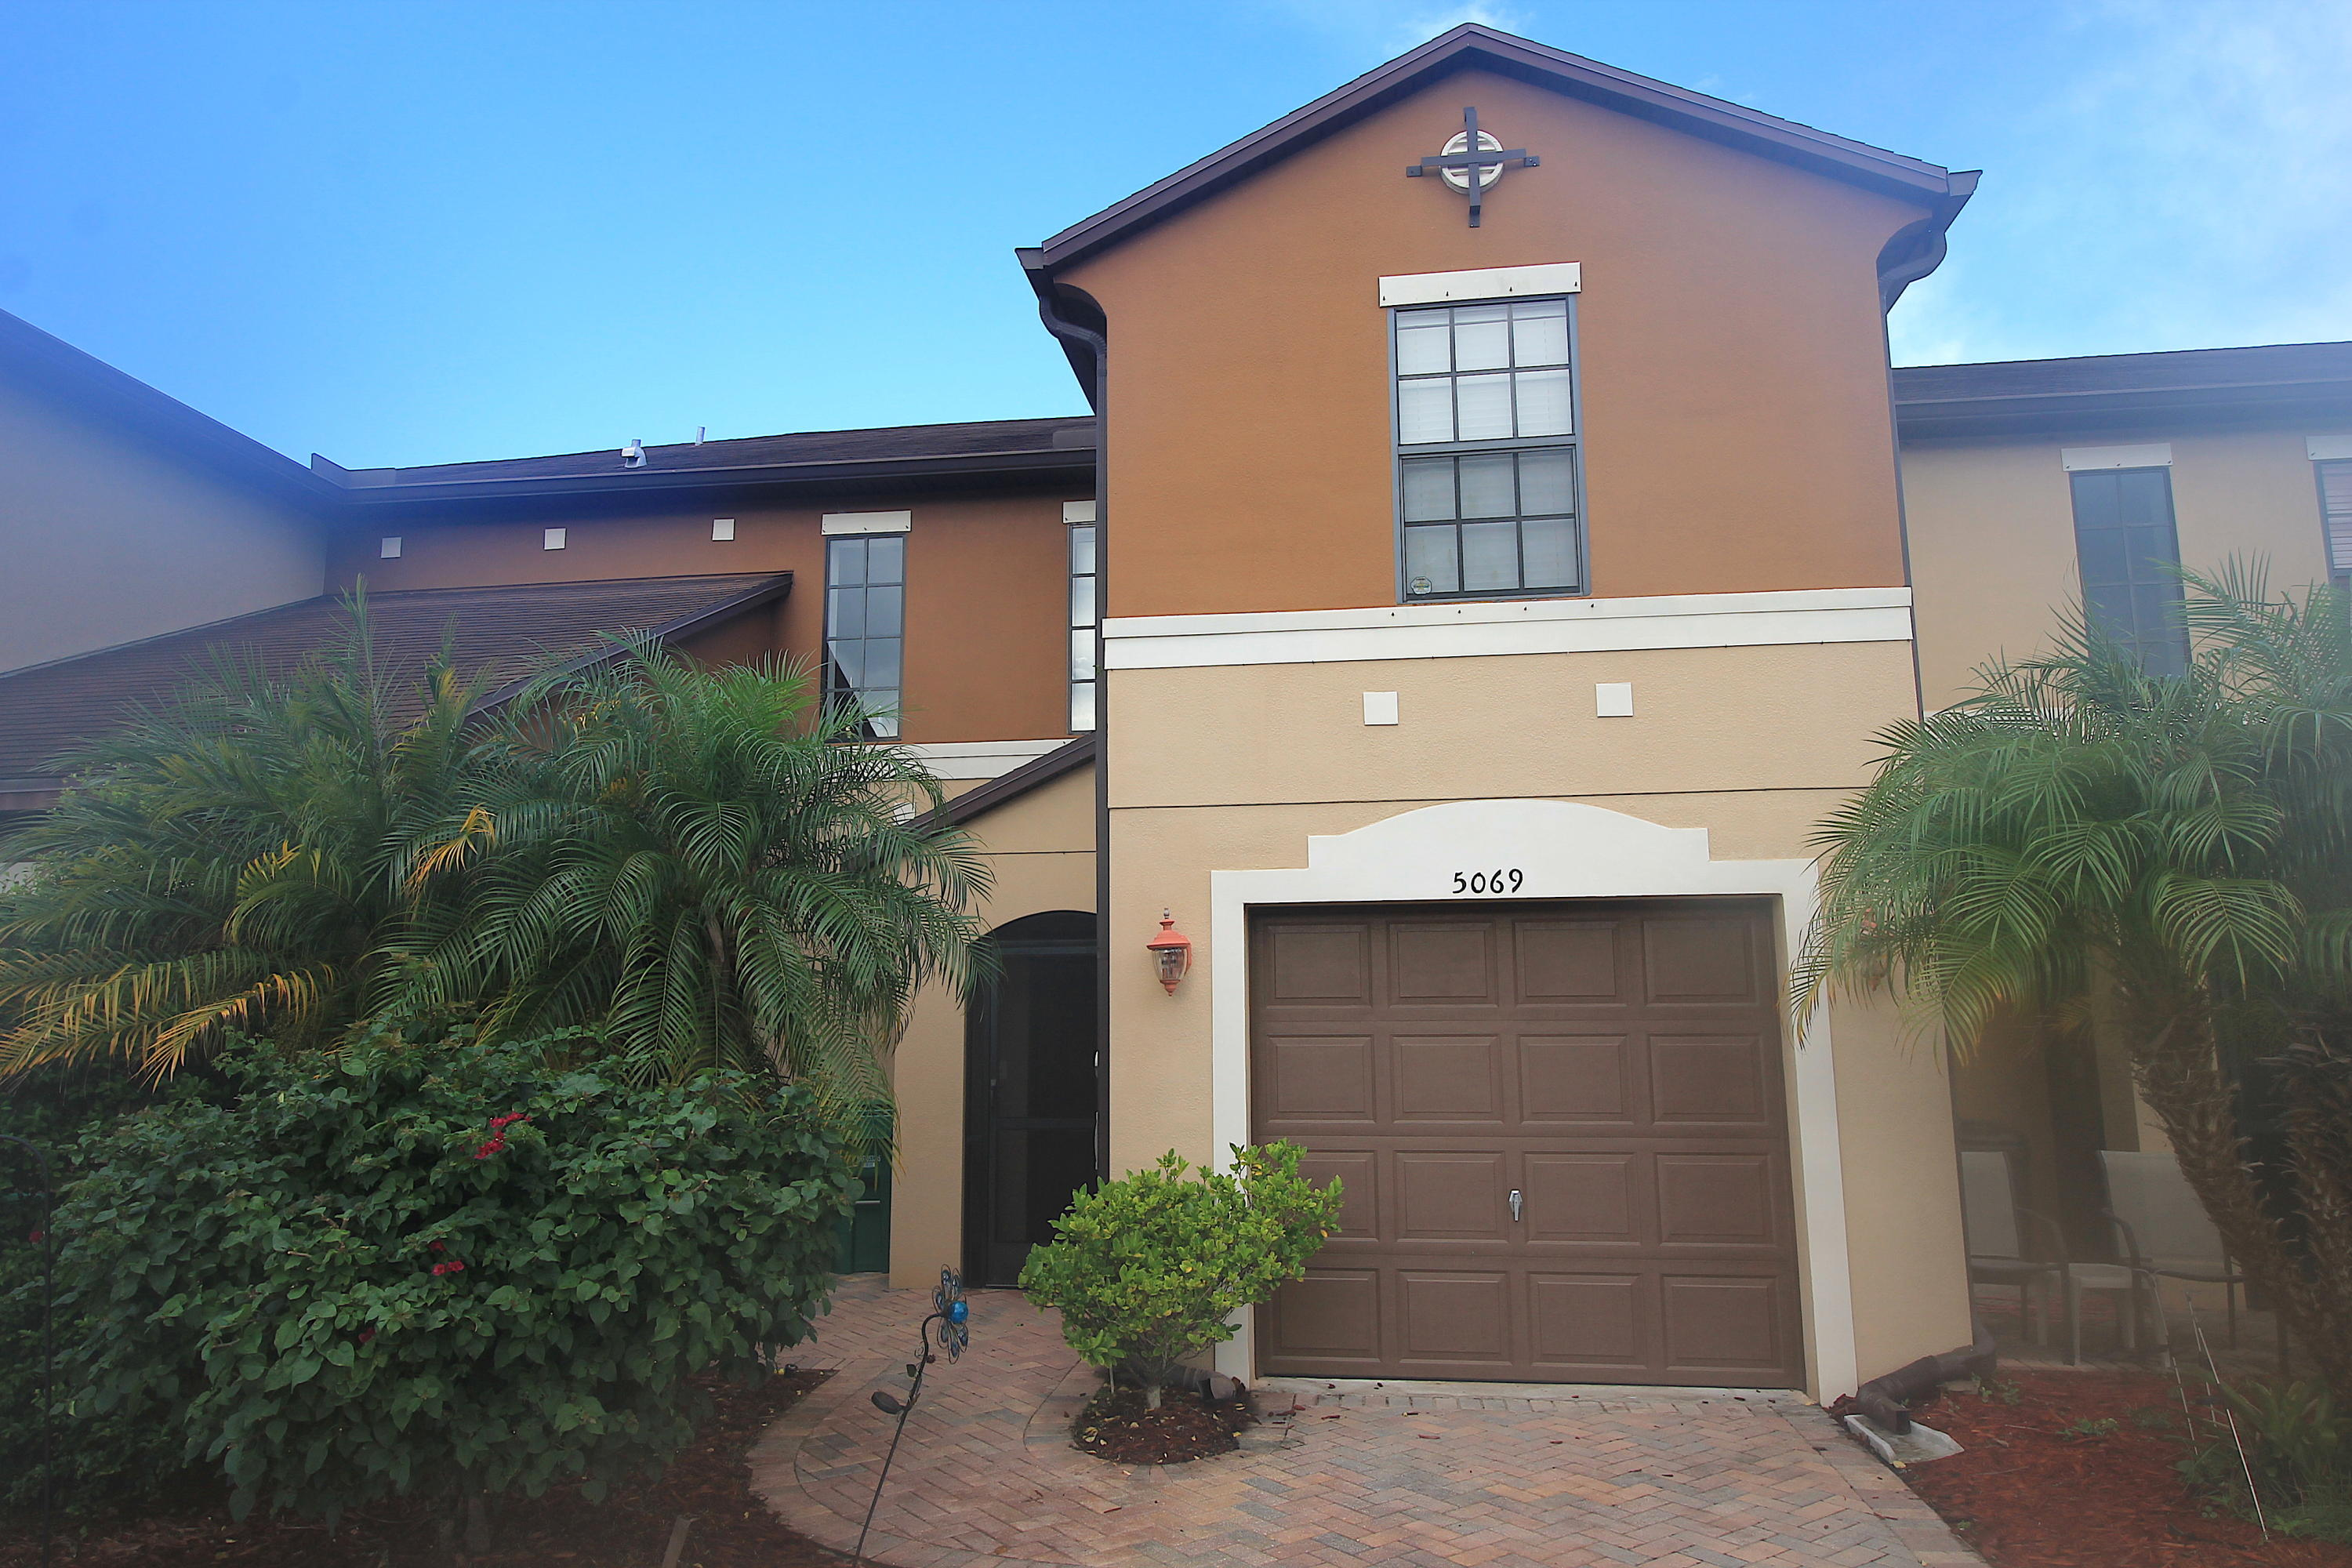 5069 Nw Coventry Circle, Port Saint Lucie, FL 34986